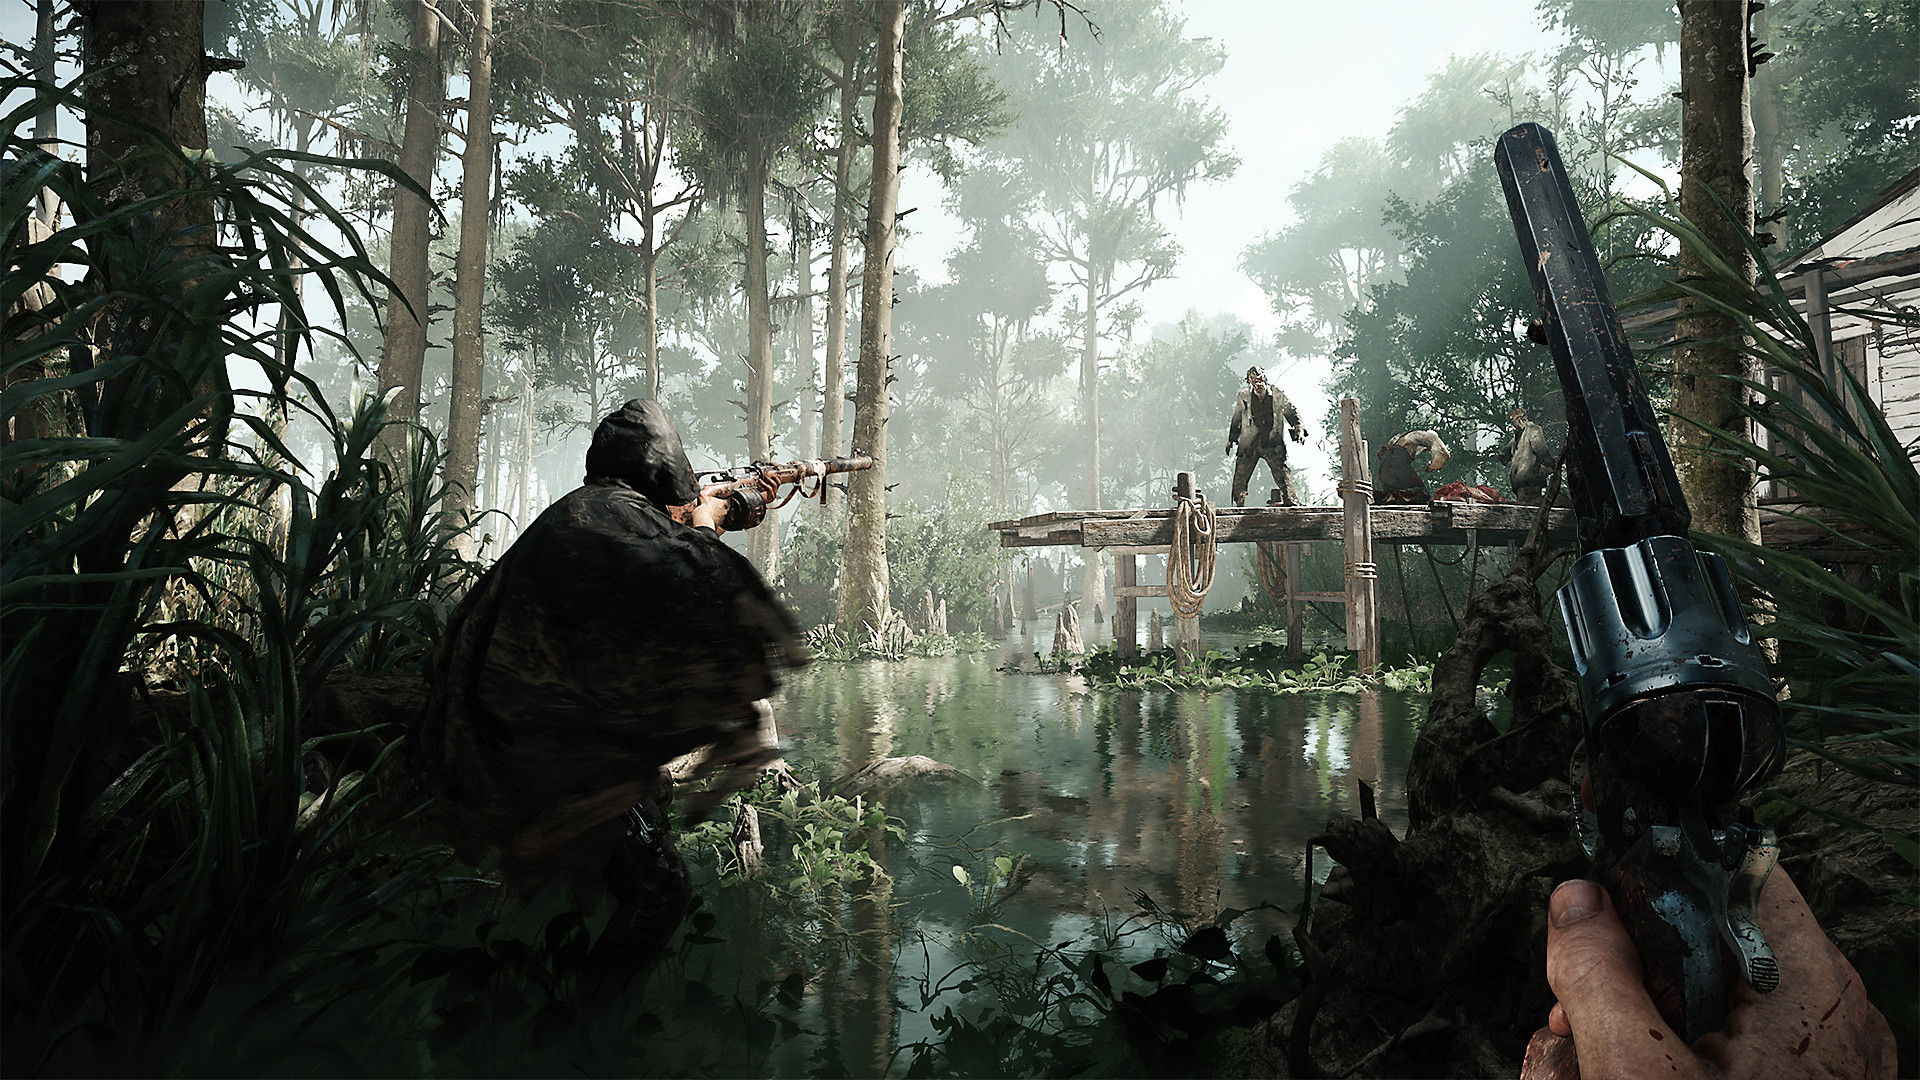 Hunt: Showdown: gameplay, pantano, personaje apuntando al enemigo